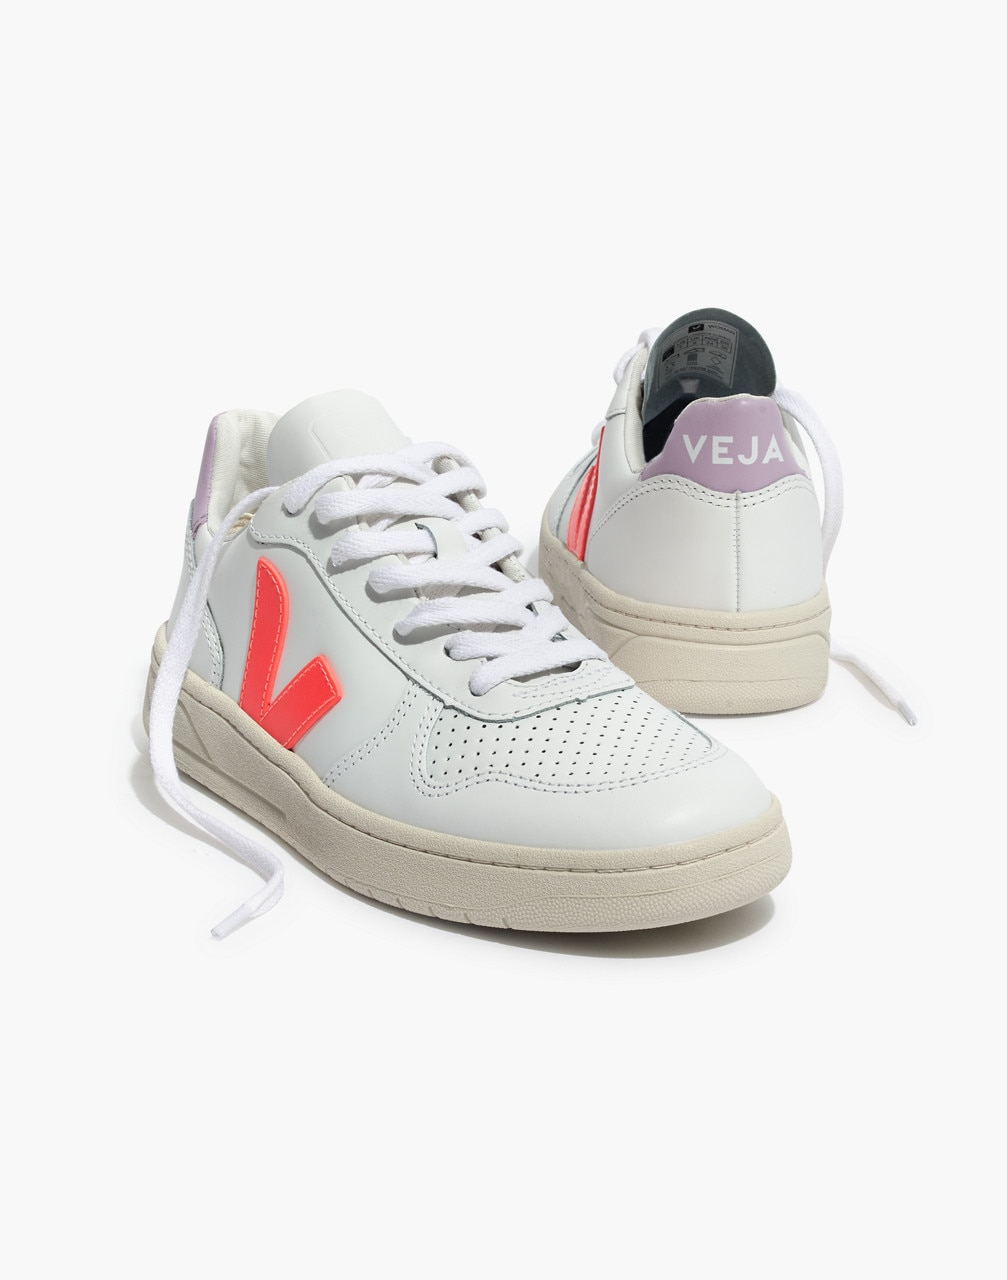 d9a5253300e368 Madewell x Veja™ V-10 Leather Sneakers in Lilac and Neon Orange in purple  orange multi image 1